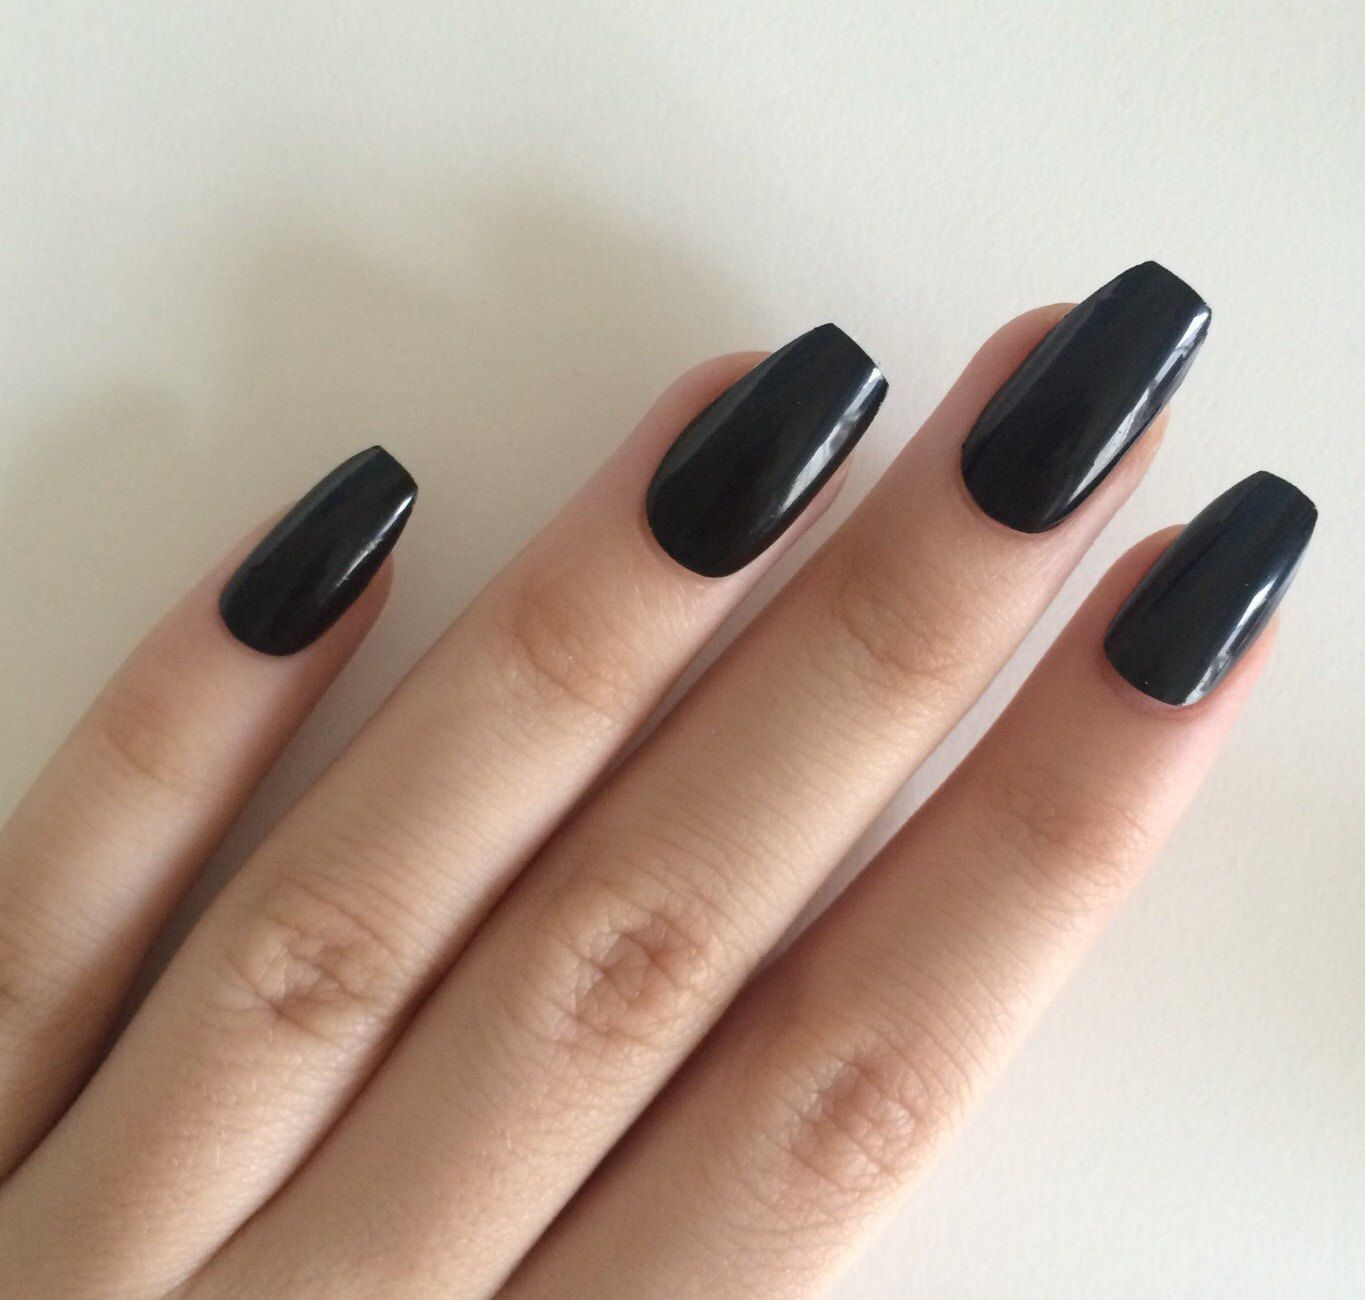 Popular Items For Coffin Shaped Nails On Etsy Fake Nails Painted Acrylic Nails Black Acrylic Nails